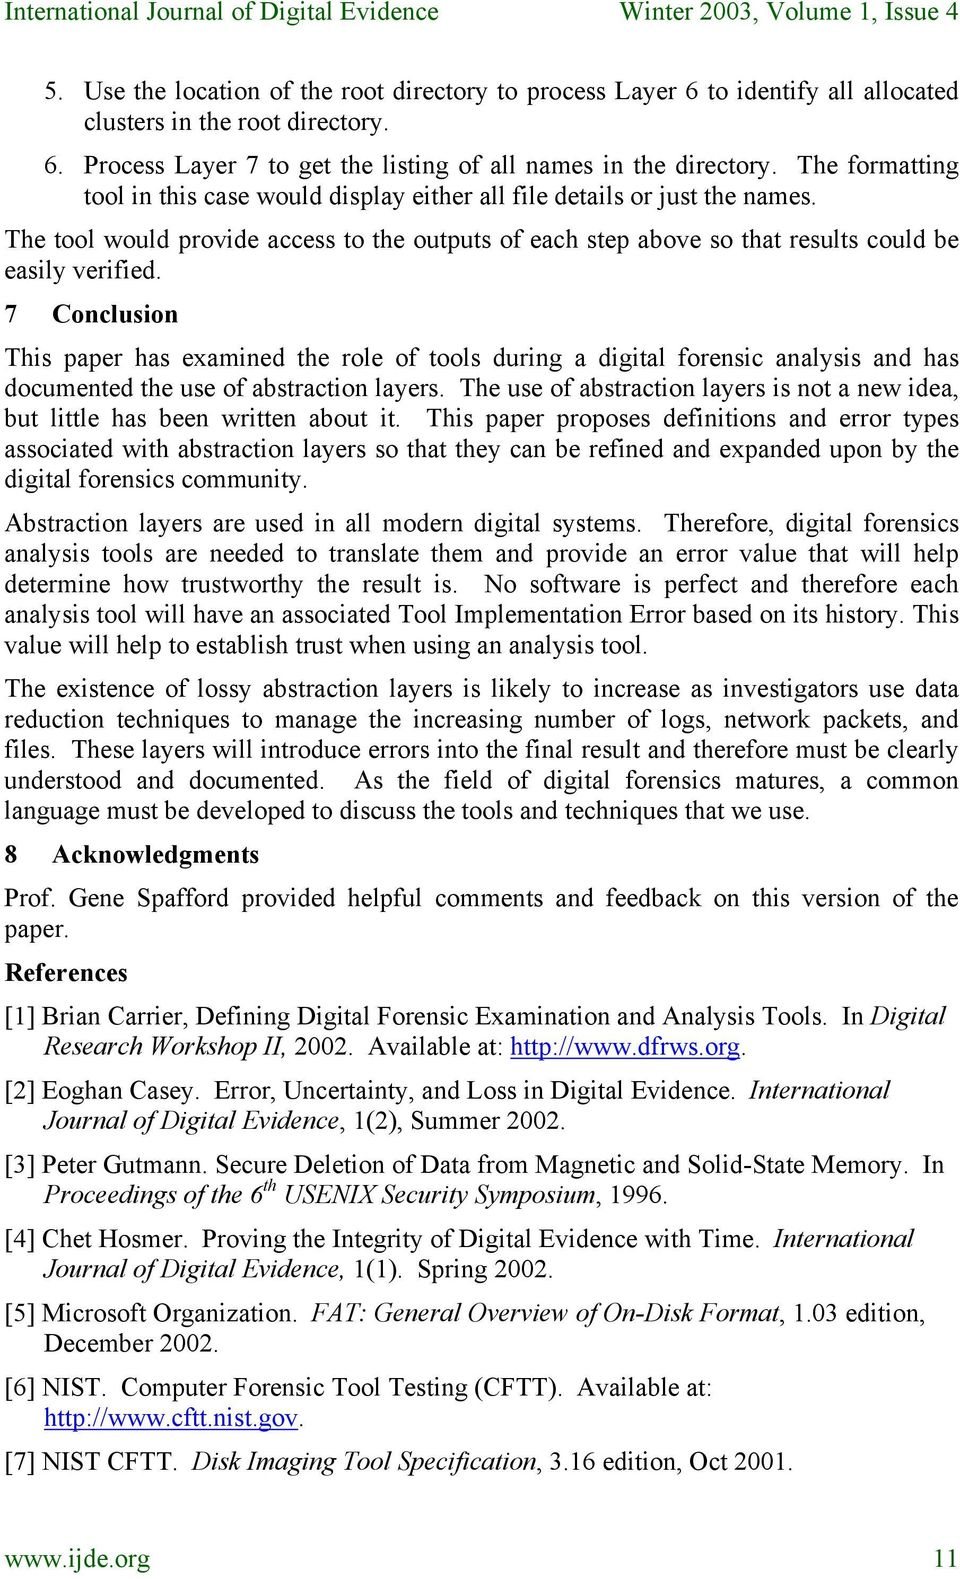 7 Conclusion This paper has examined the role of tools during a digital forensic analysis and has documented the use of abstraction layers.